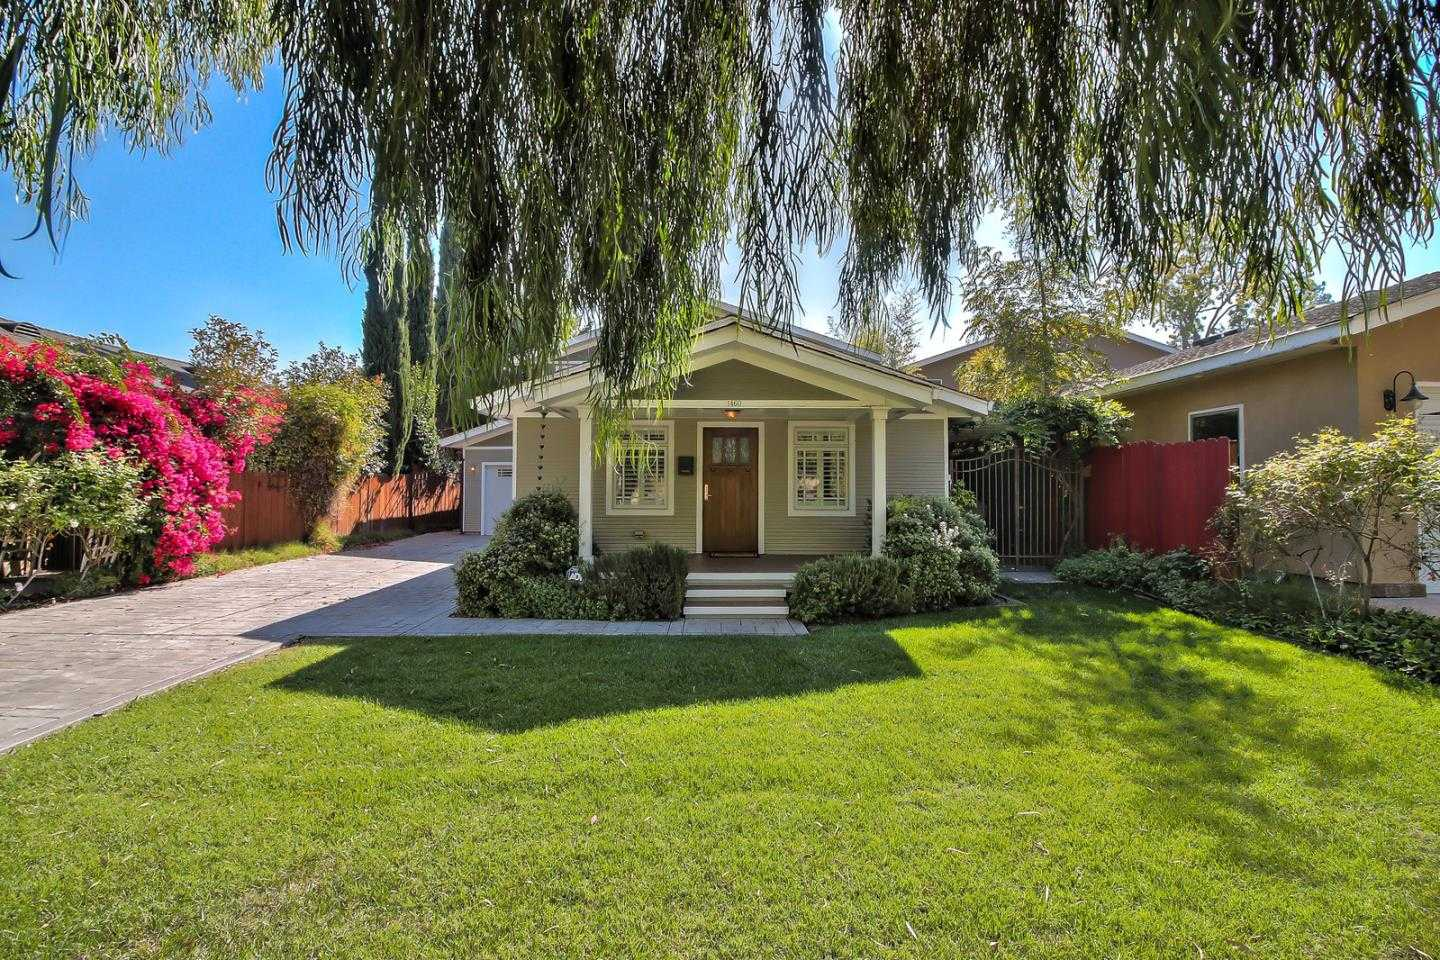 $999,000 - 3Br/3Ba -  for Sale in San Jose